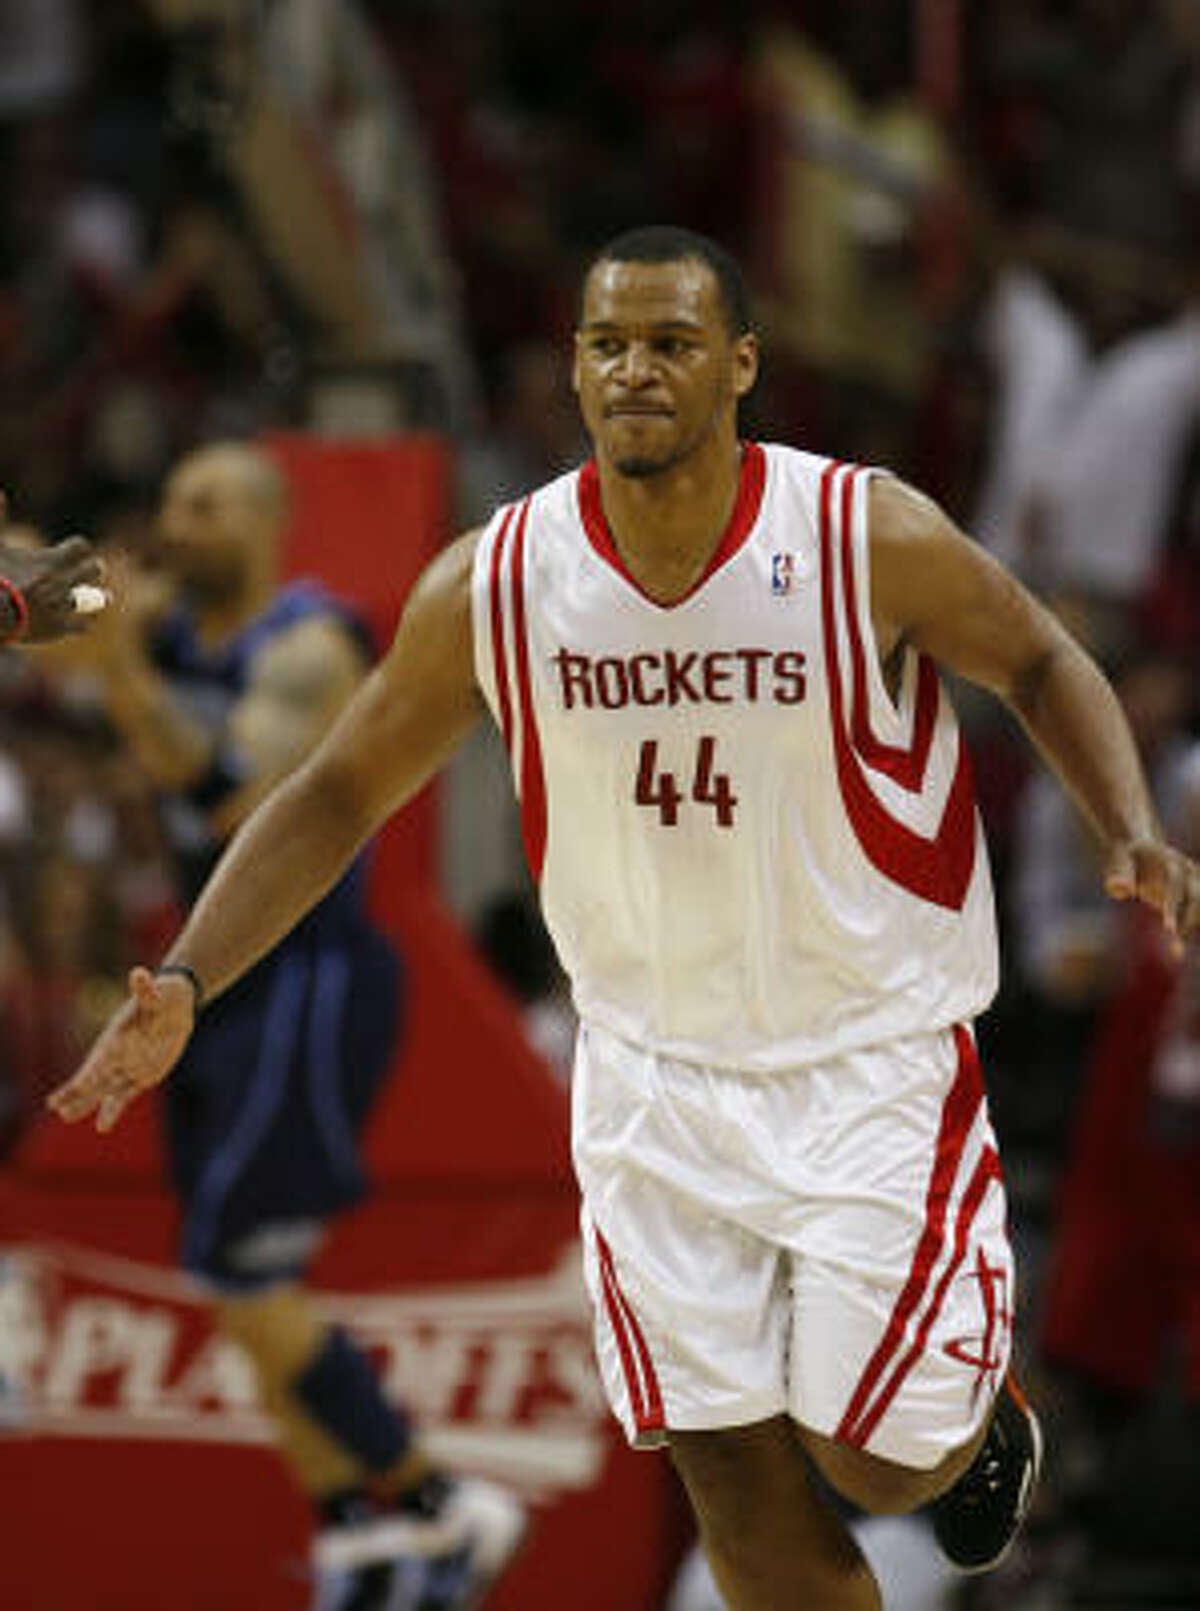 Rockets forward Chuck Hayes started at center during the first two games.